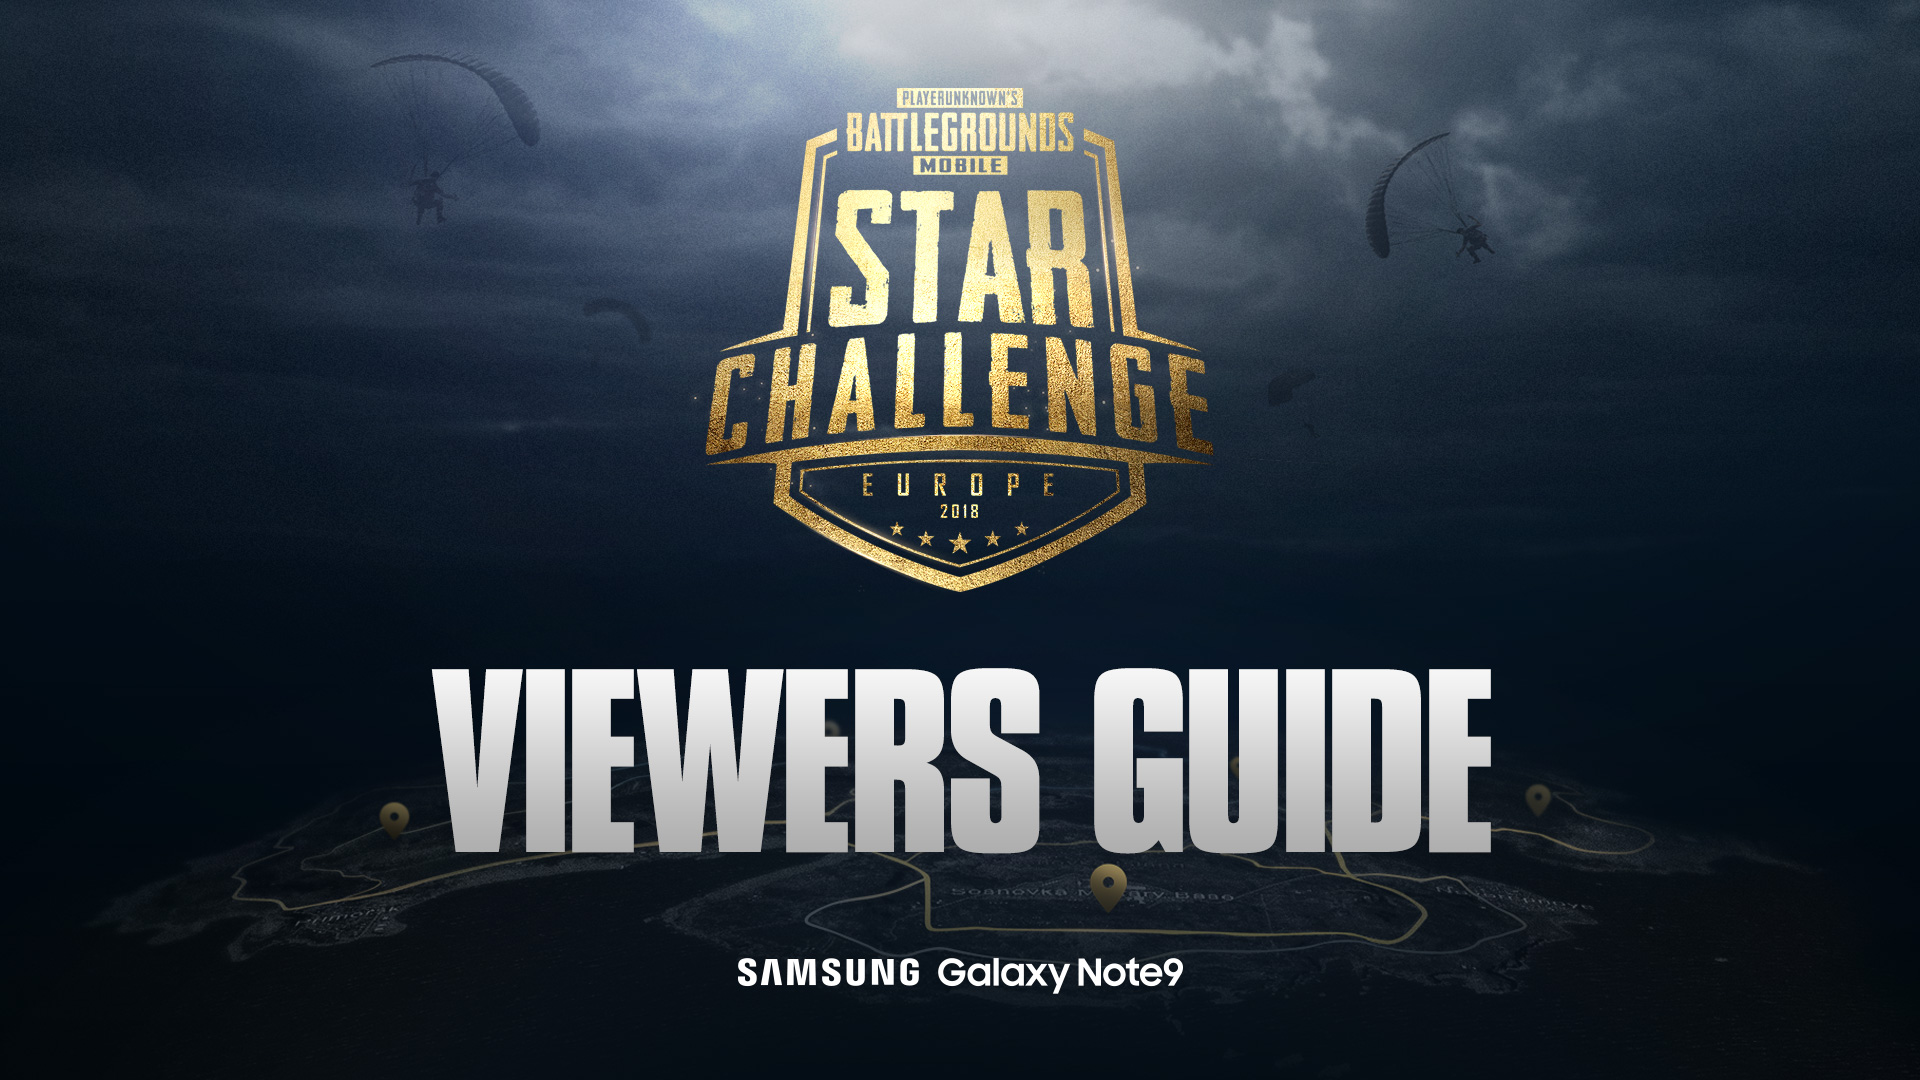 Pubg Mobile Star Challenge Europe Final Viewers Guide Pubg